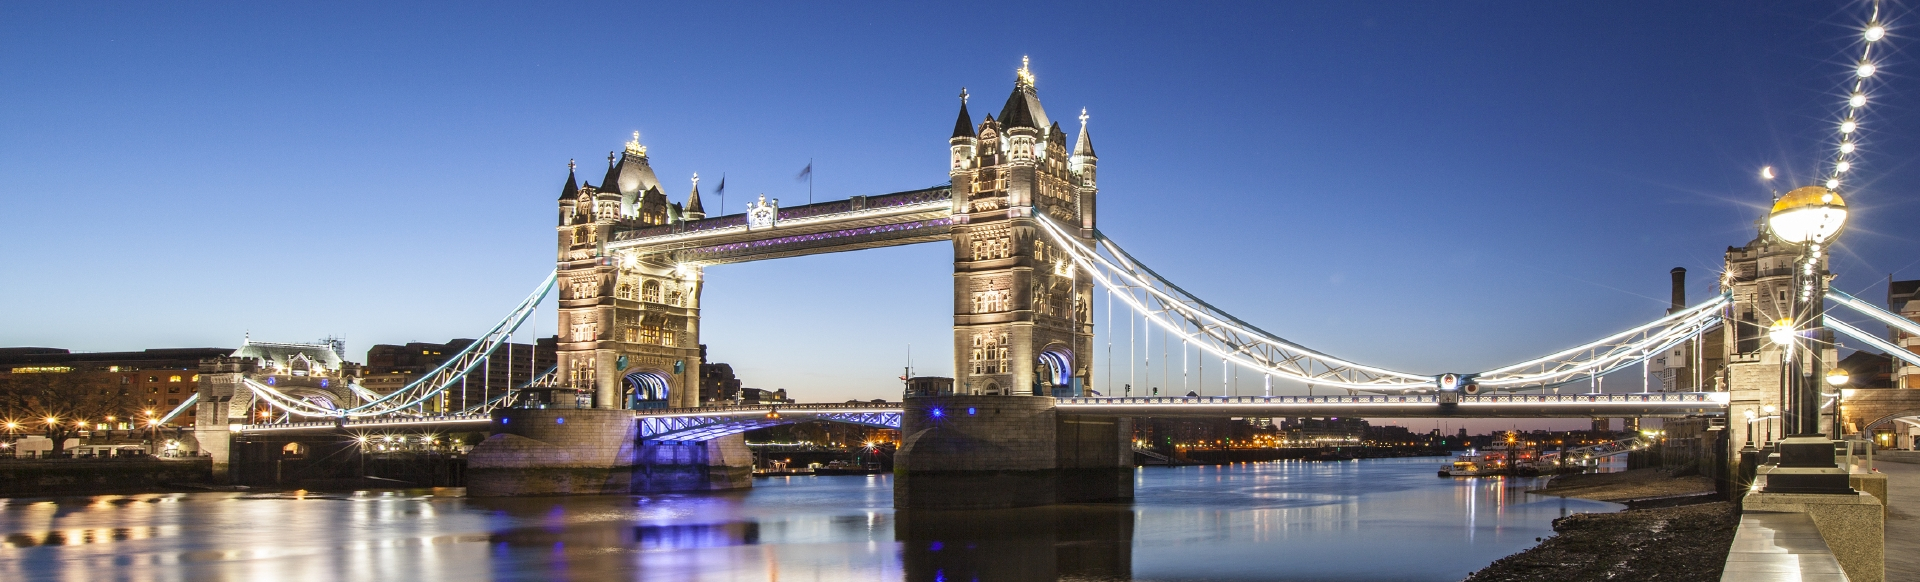 Riverside view of Tower Bridge on a clear night.